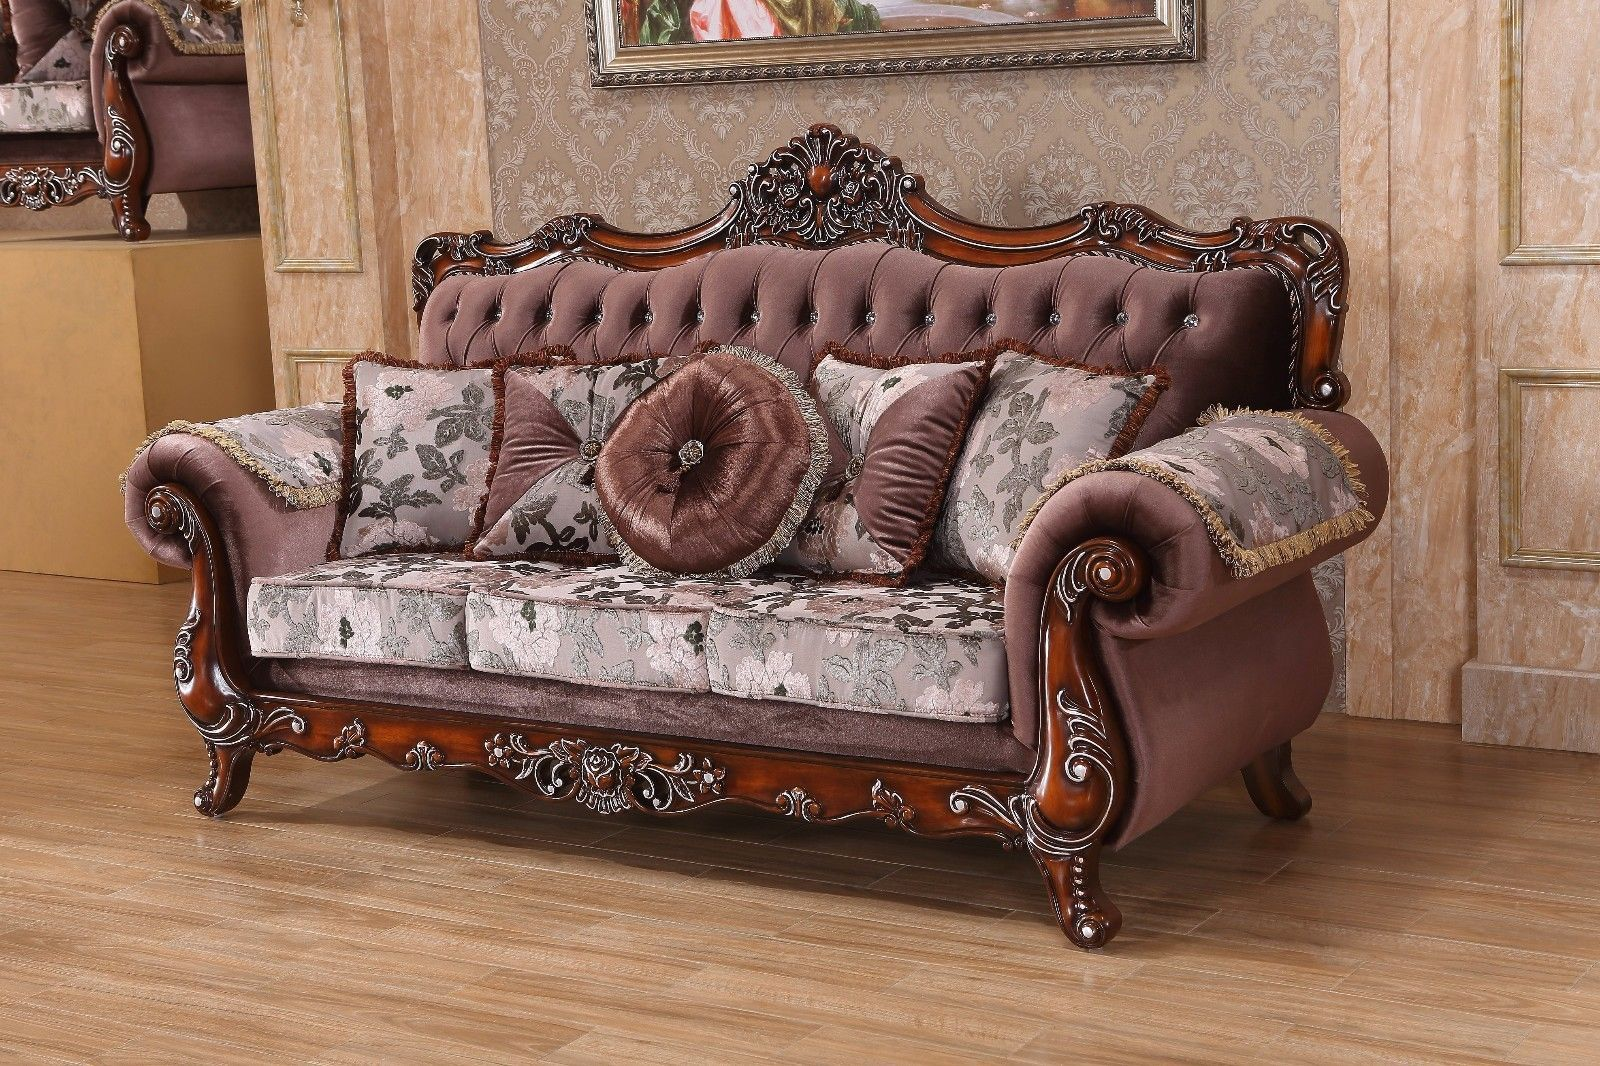 Meridian 637 Marbella Living Room Set 2pcs in Rose Crystal Traditional Style